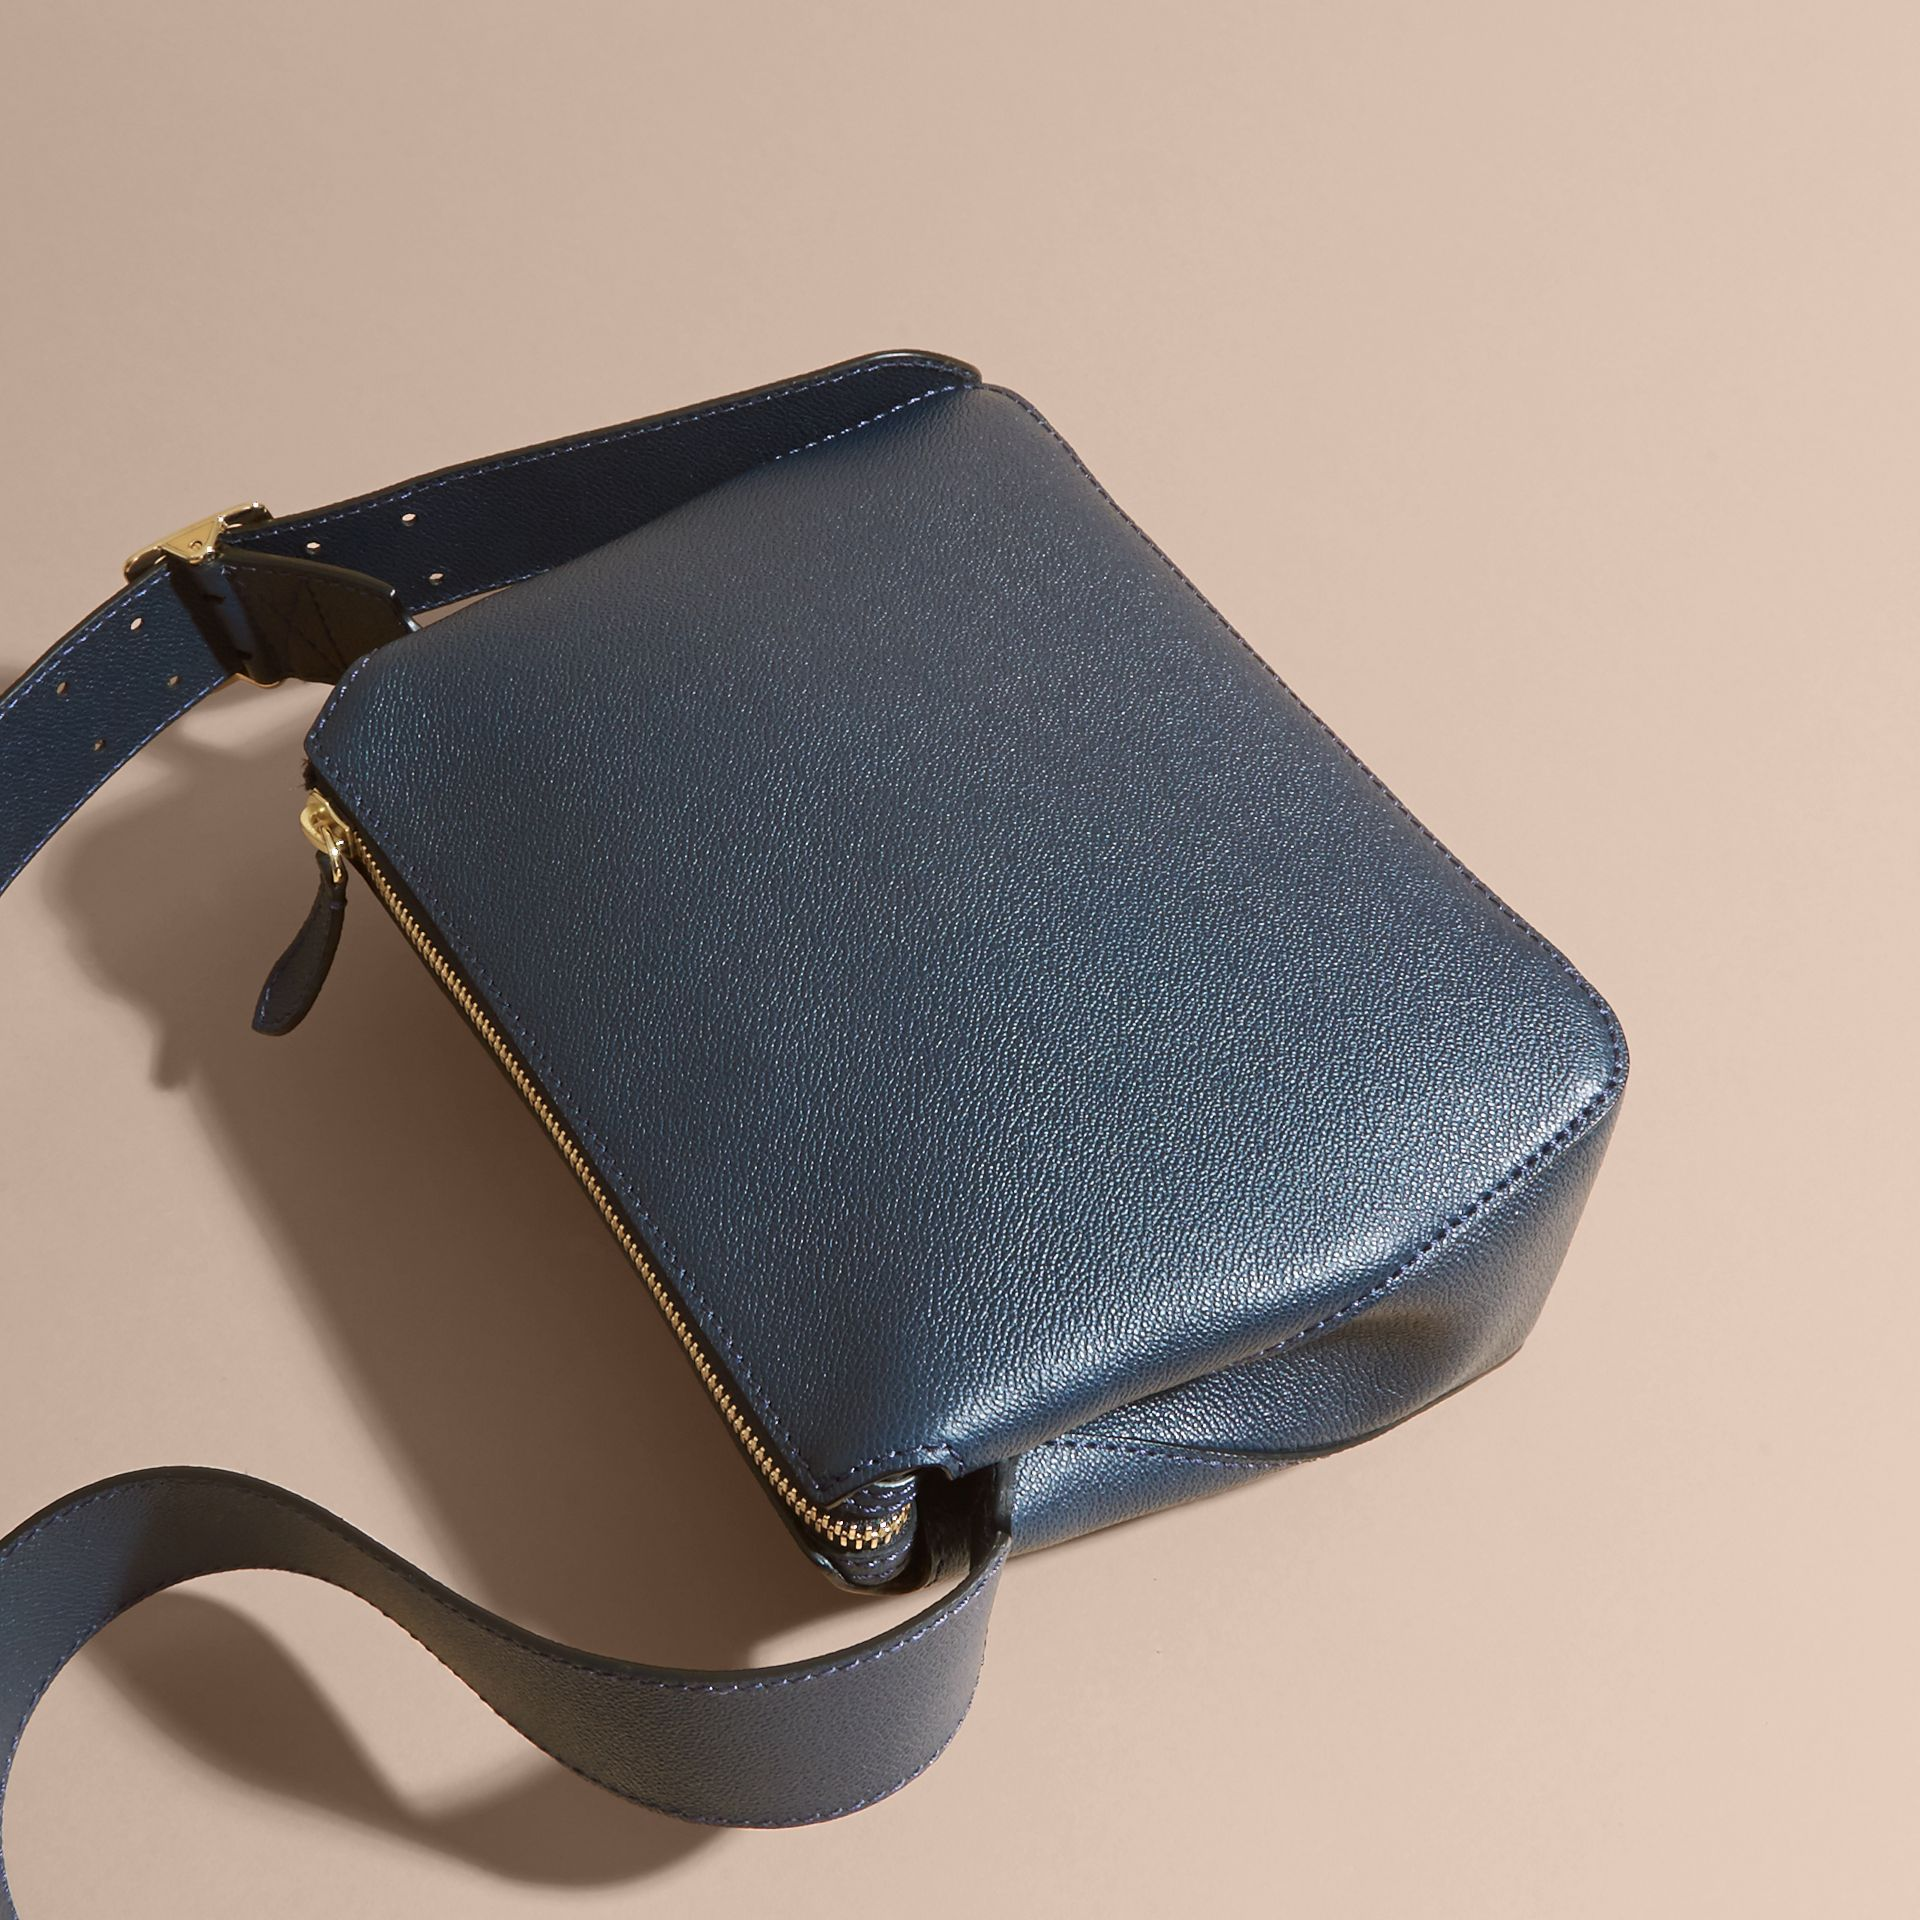 Buckle Detail Leather Crossbody Bag Blue Carbon - gallery image 4